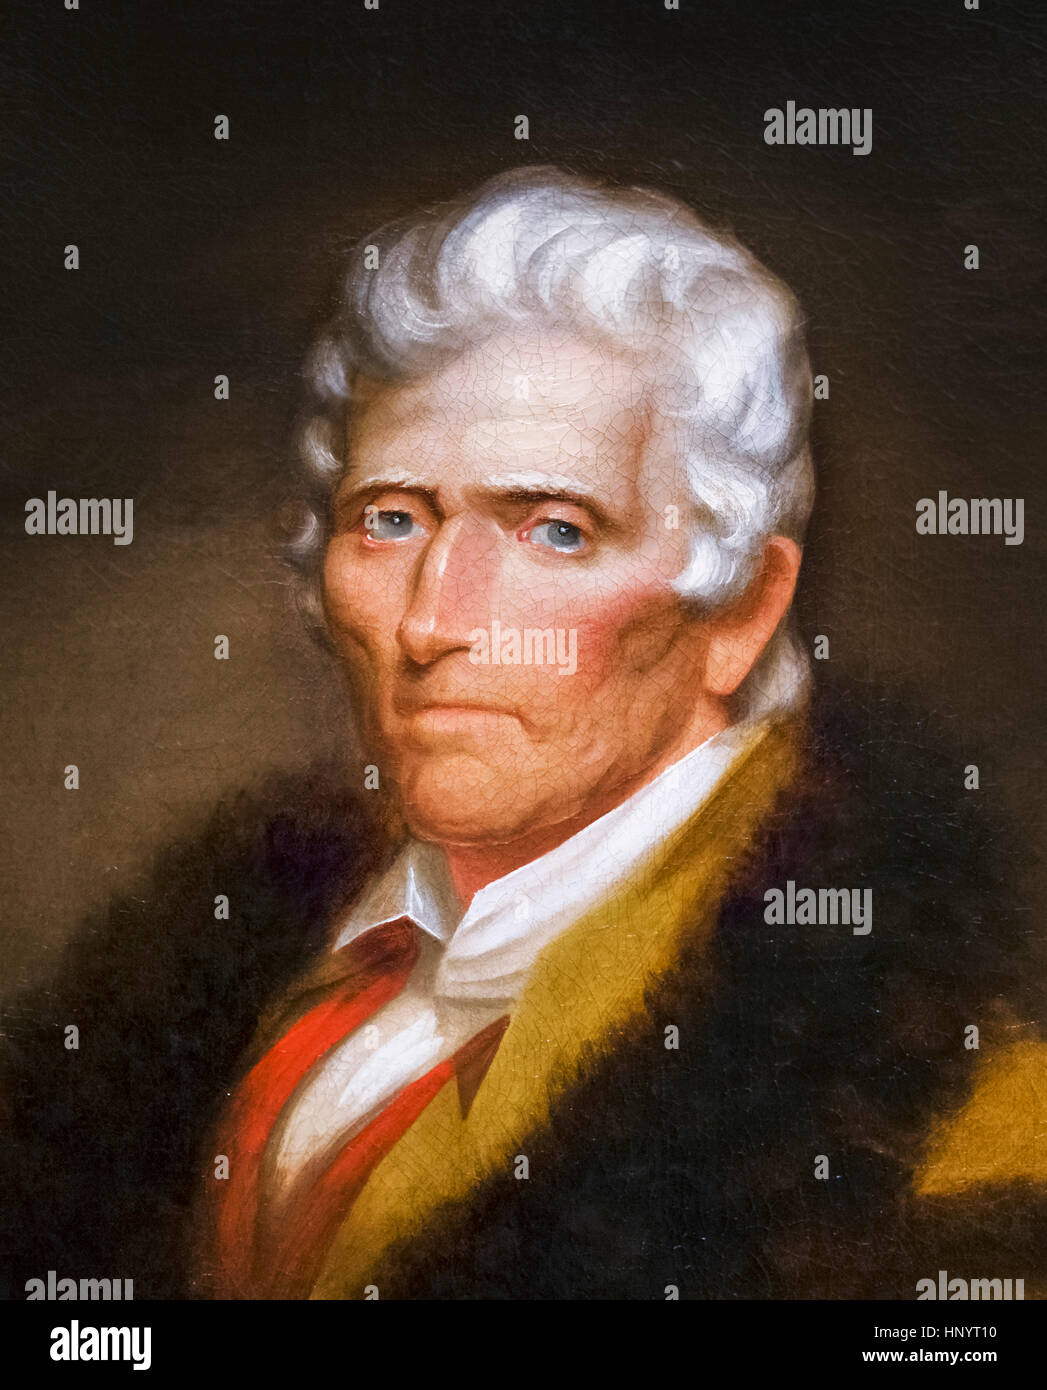 Daniel Boone (1734-1820), portrait by Chester Harding, oil on canvas, 1820. Daniel Boone was a famous American pioneer - Stock Image